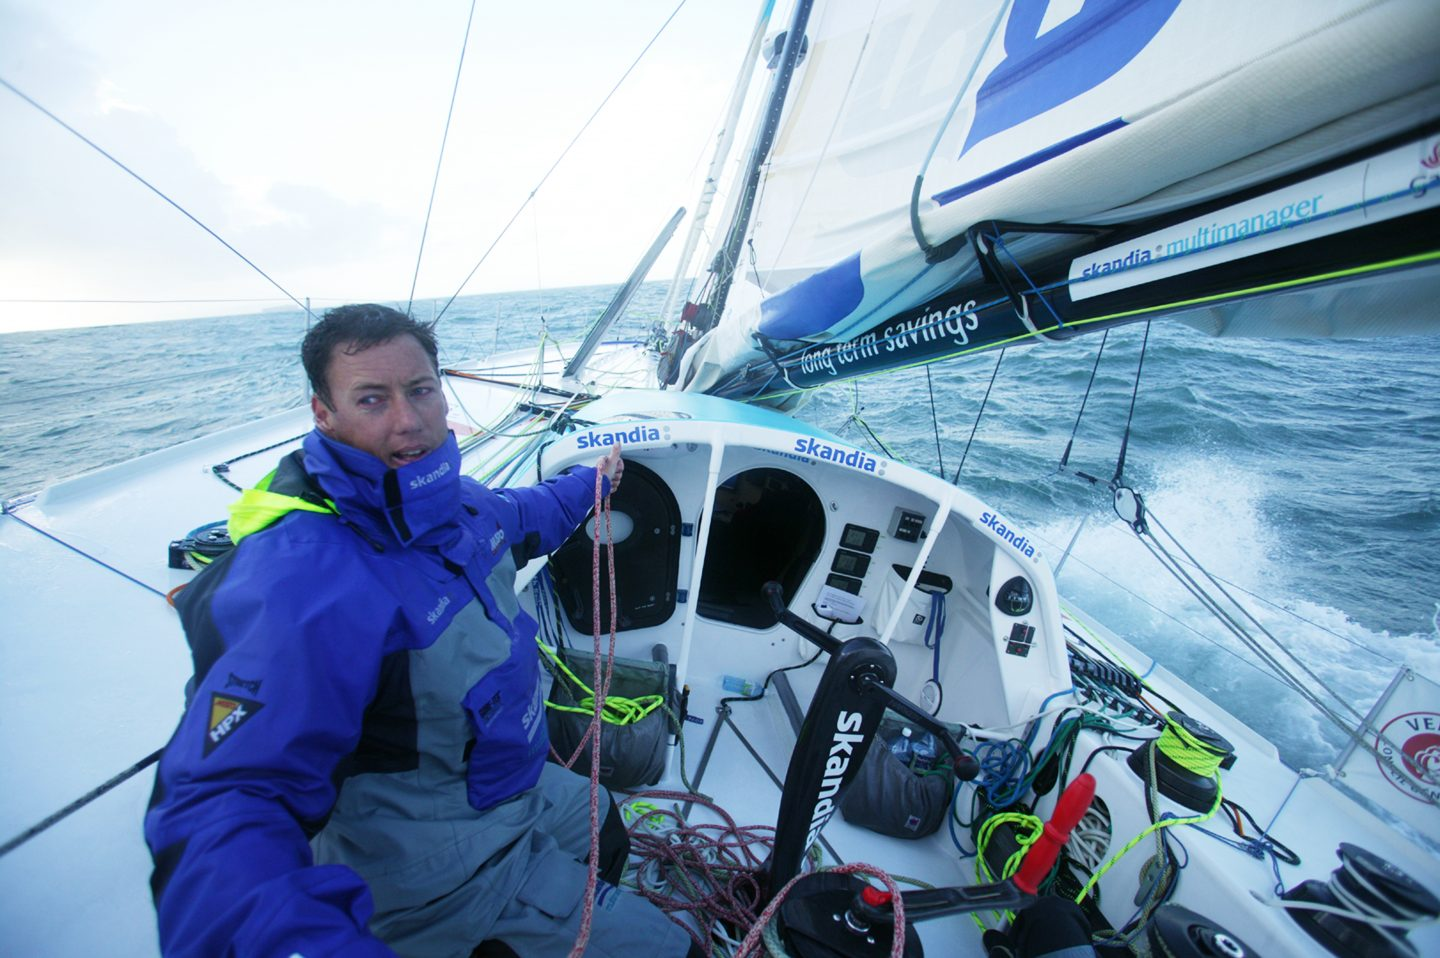 A single sailor sitting in his sailboat steering. Nick Moloney, sailing, ocean athlete, career, competition, success, preparation, mindset, GamePlan A